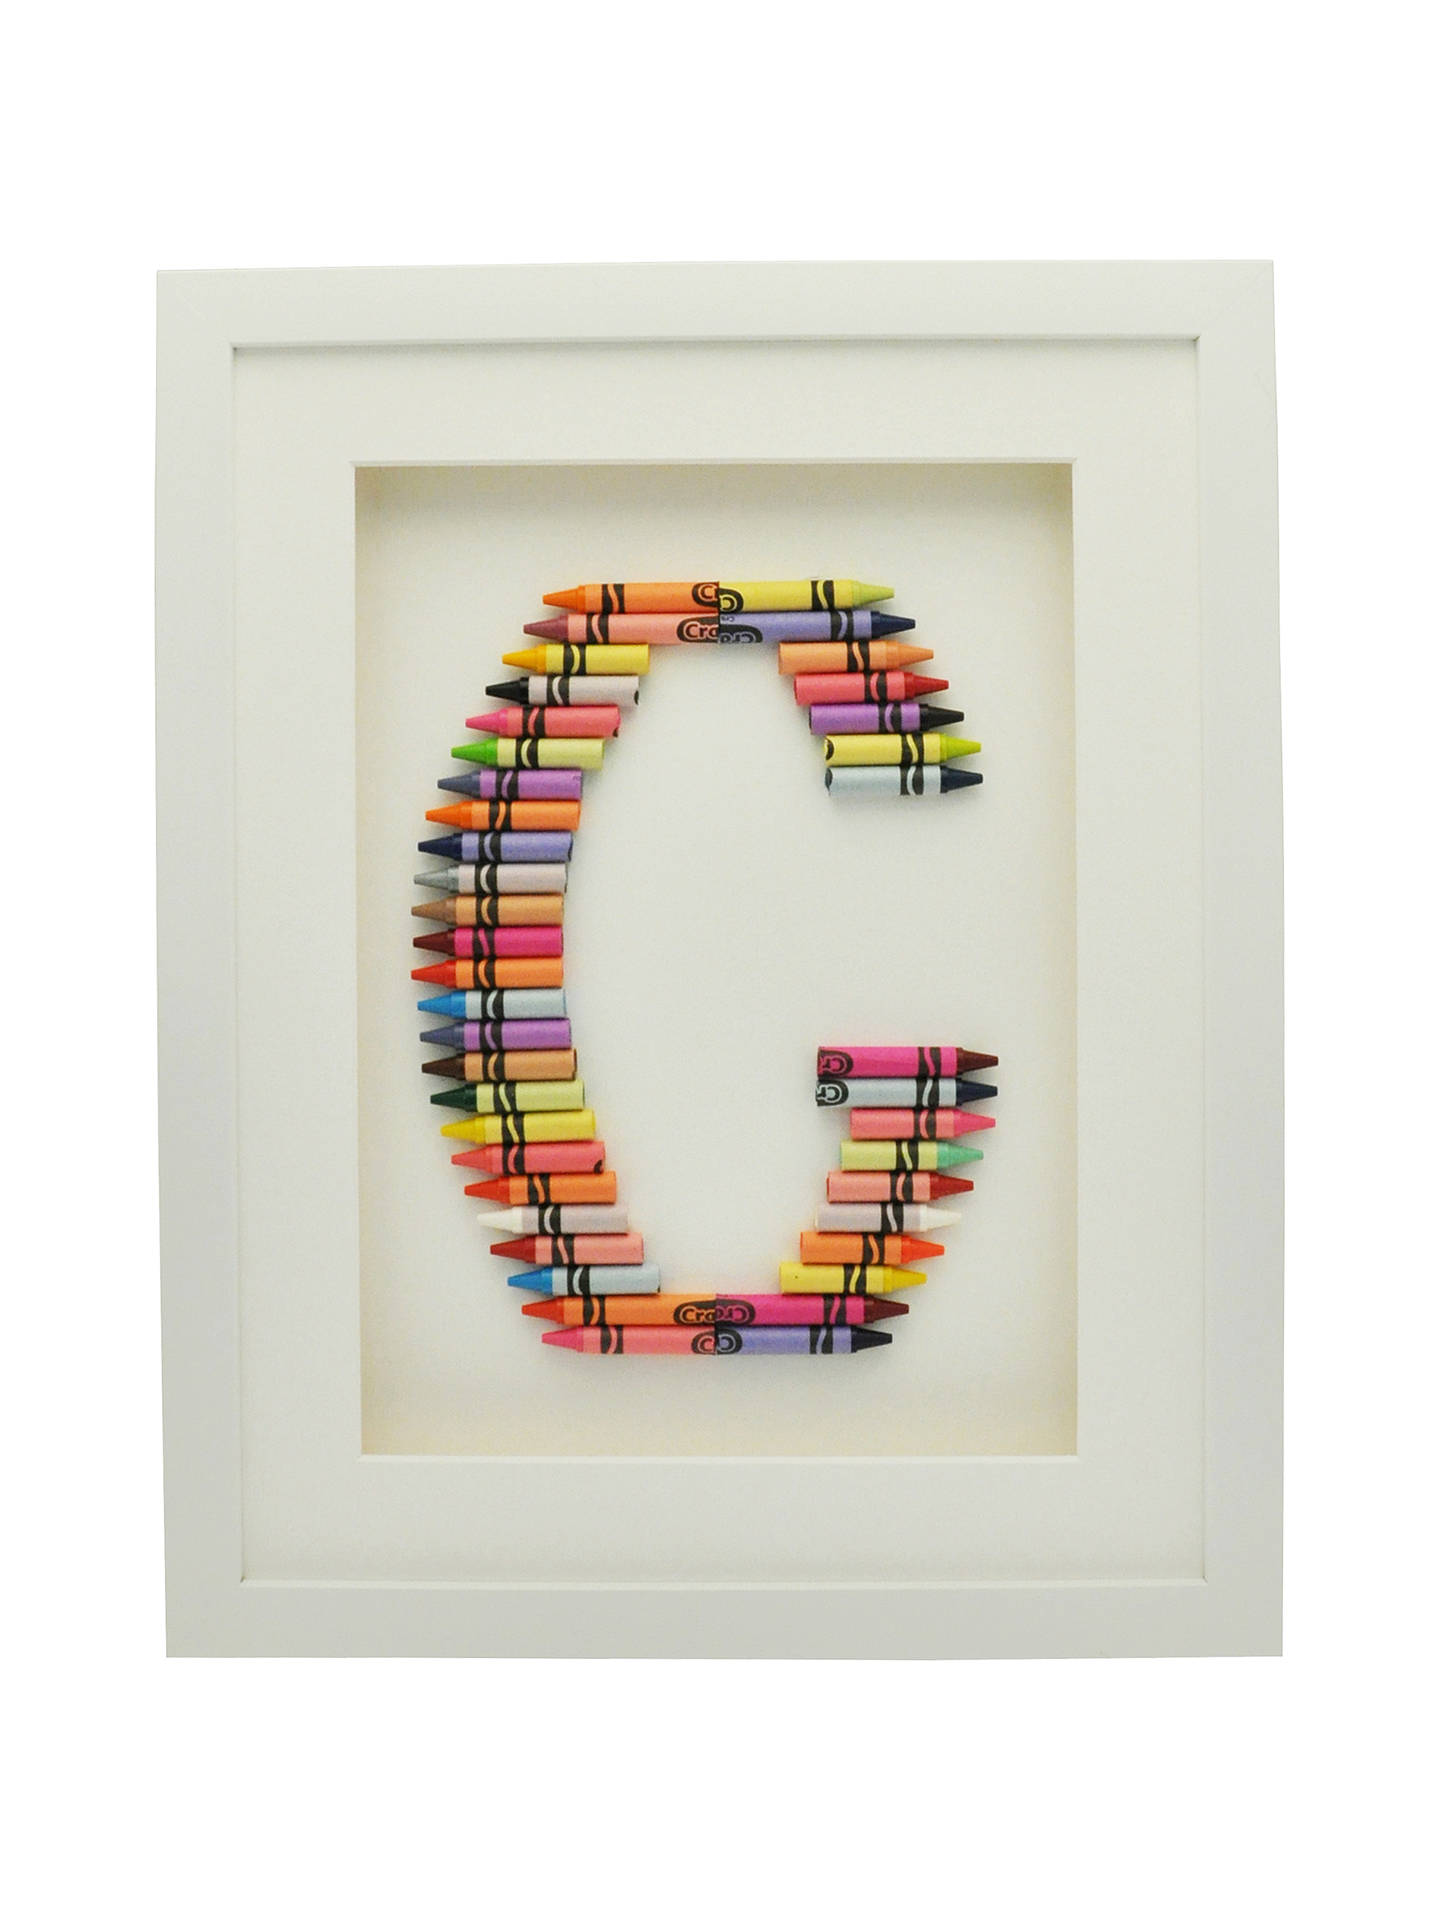 BuyThe Letteroom Crayon G Framed 3D Artwork, 34 x 29cm Online at johnlewis.com